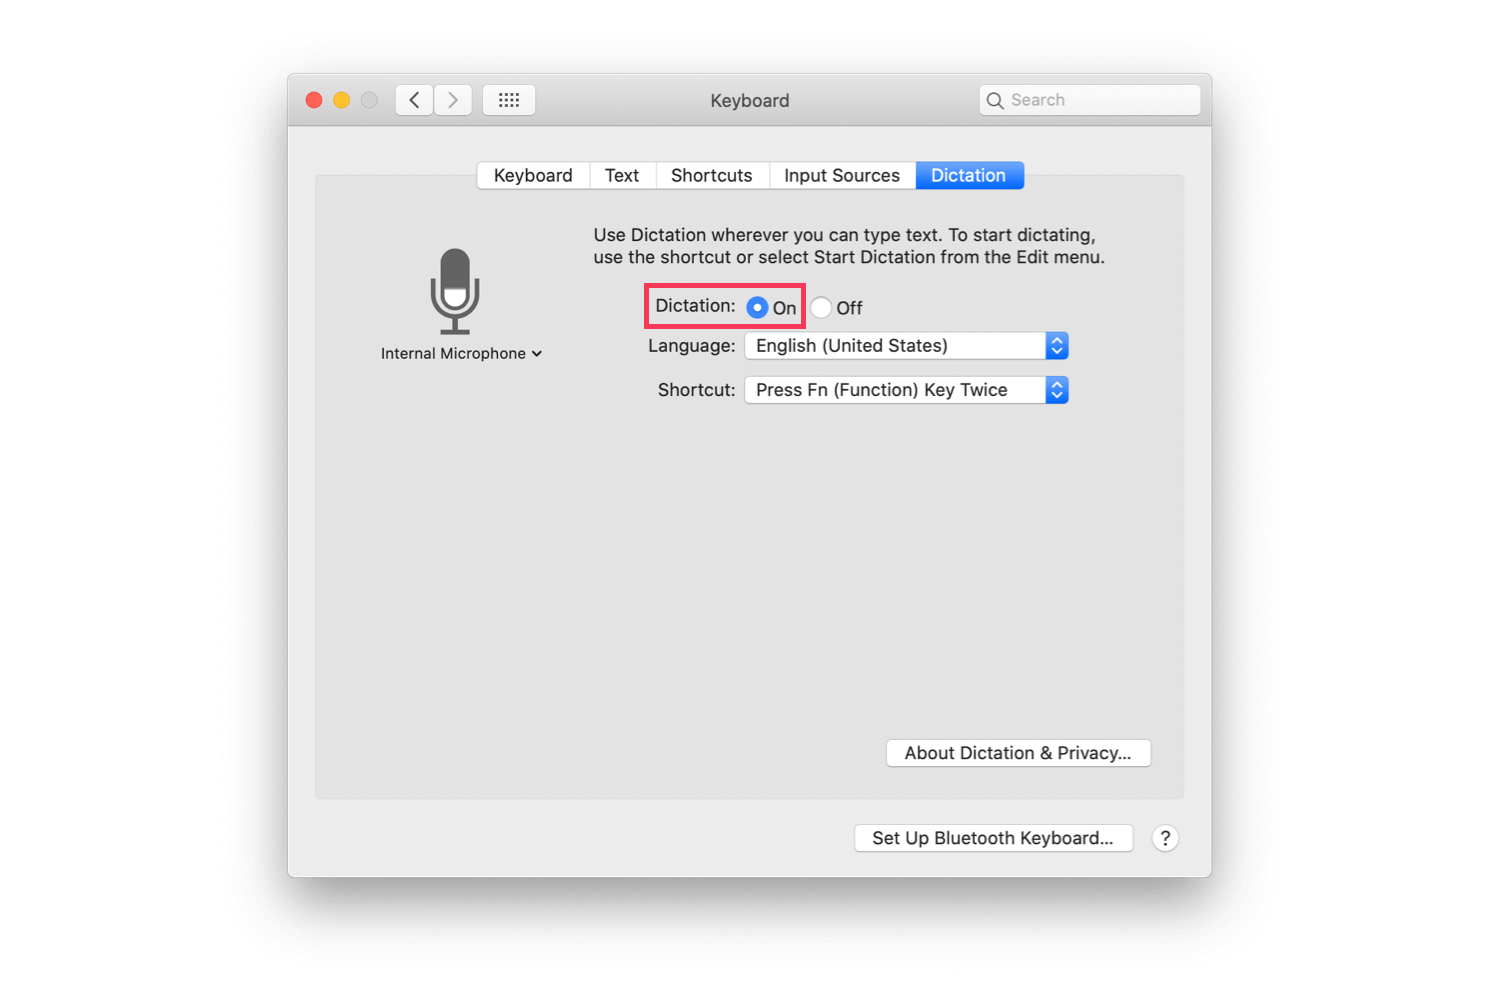 The macOS System Preferences' screen with Dictation > On highlighted